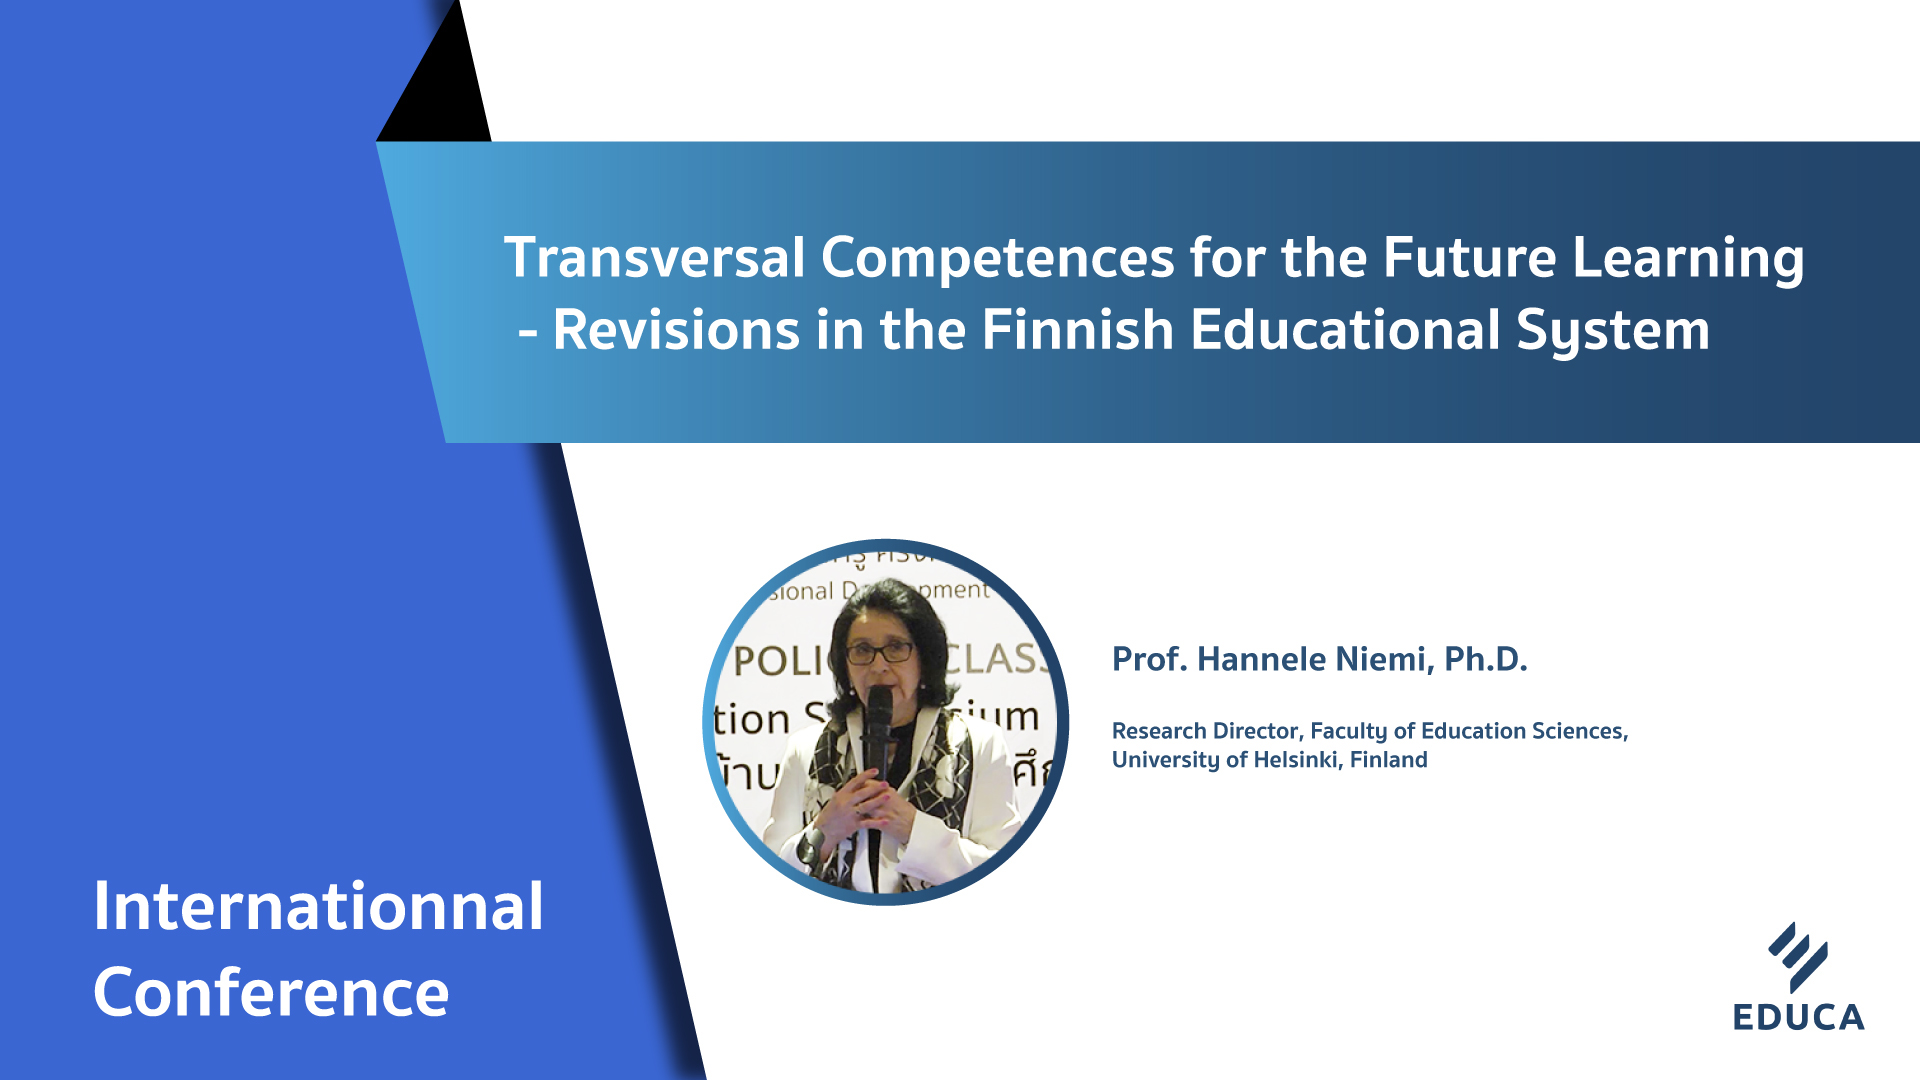 Transversal Competences for the Future Learning - Revisions in the Finnish Educational System